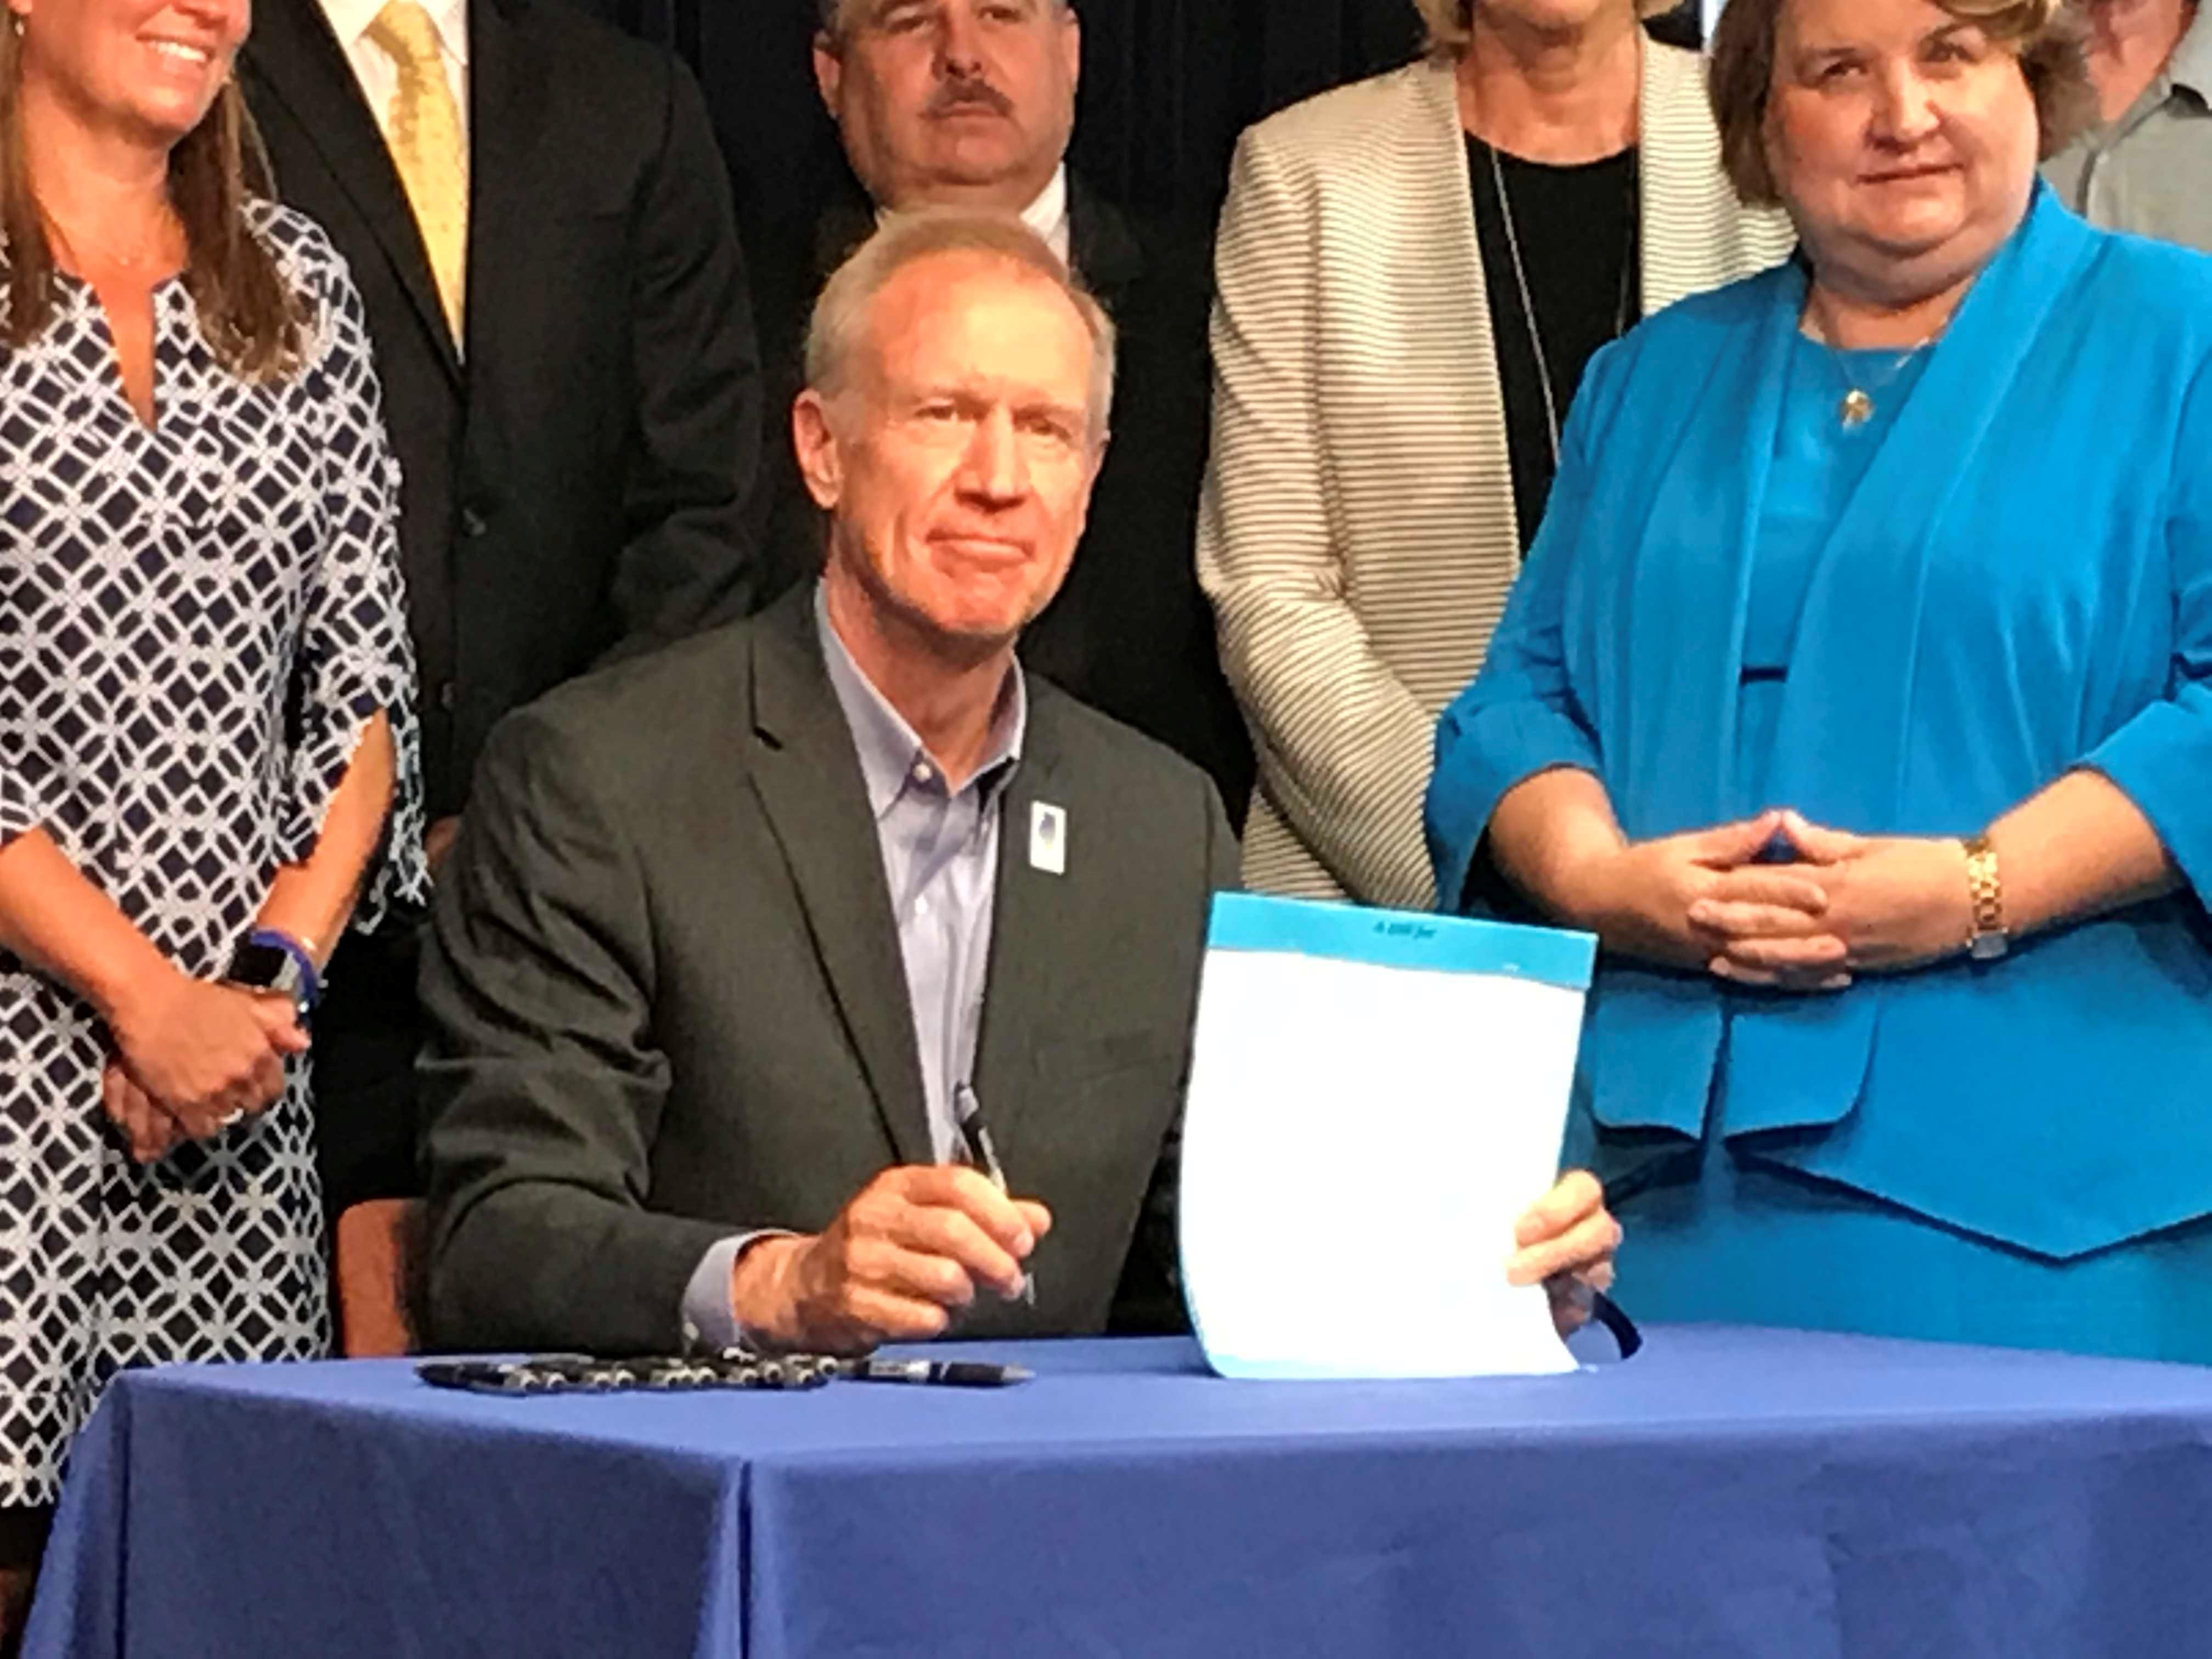 Rauner signs gun order of protection, waiting period laws